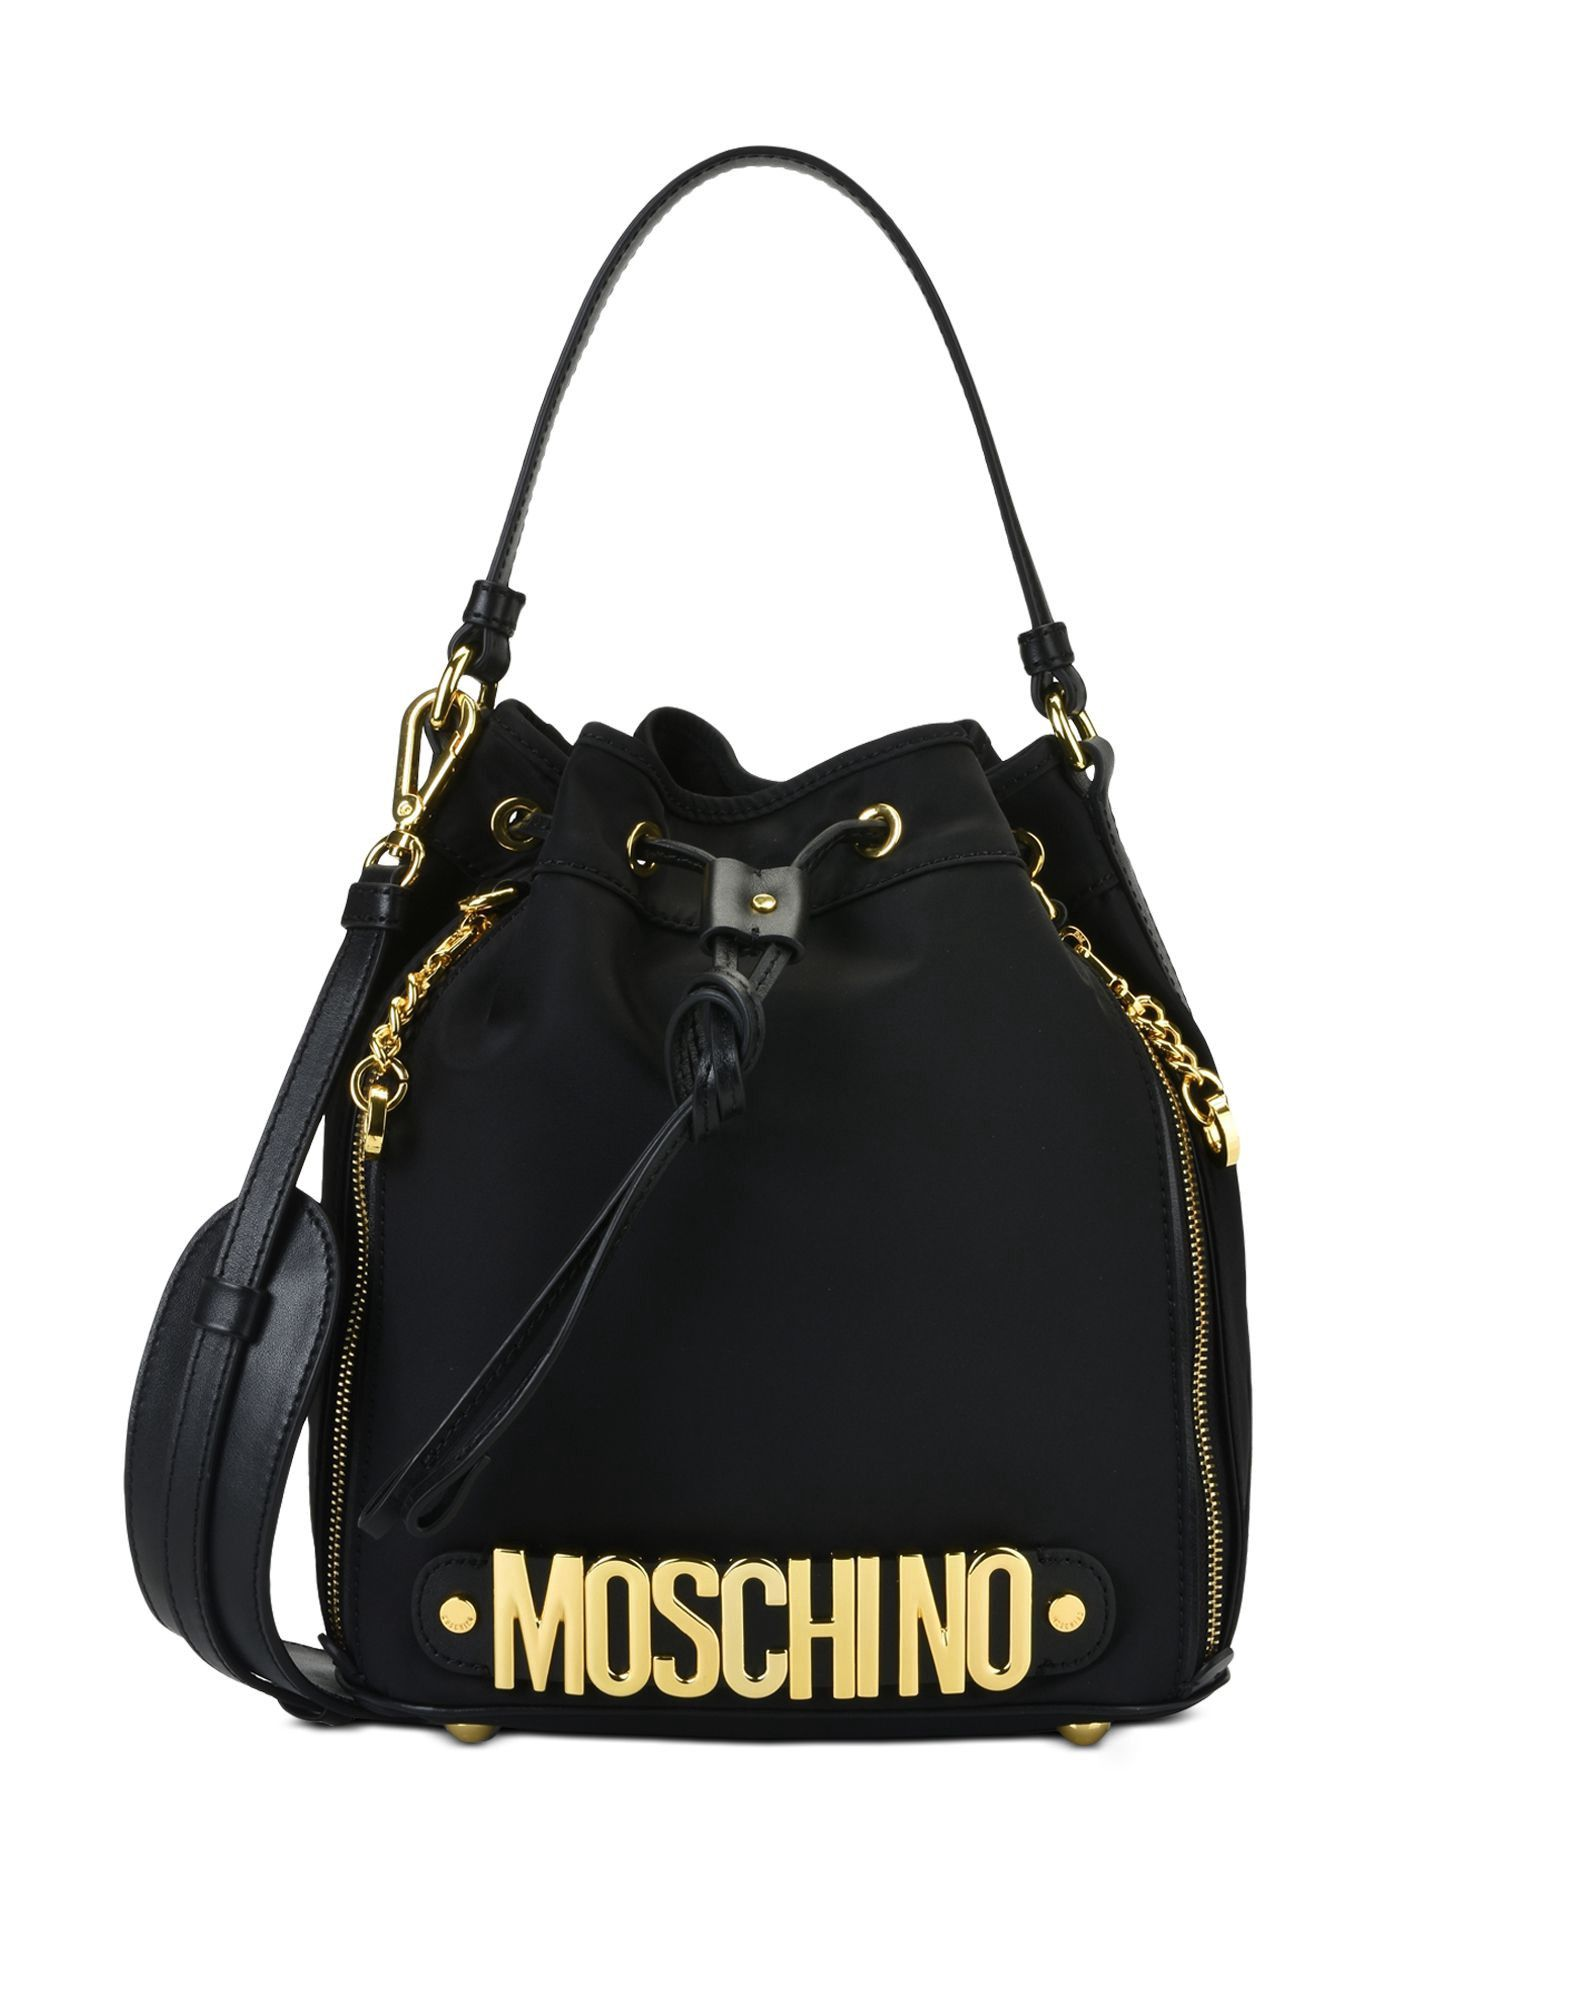 536230ad67 MOSCHINO Moschino Bucket Bag. #moschino #bags #shoulder bags #hand bags  #bucket #cotton #